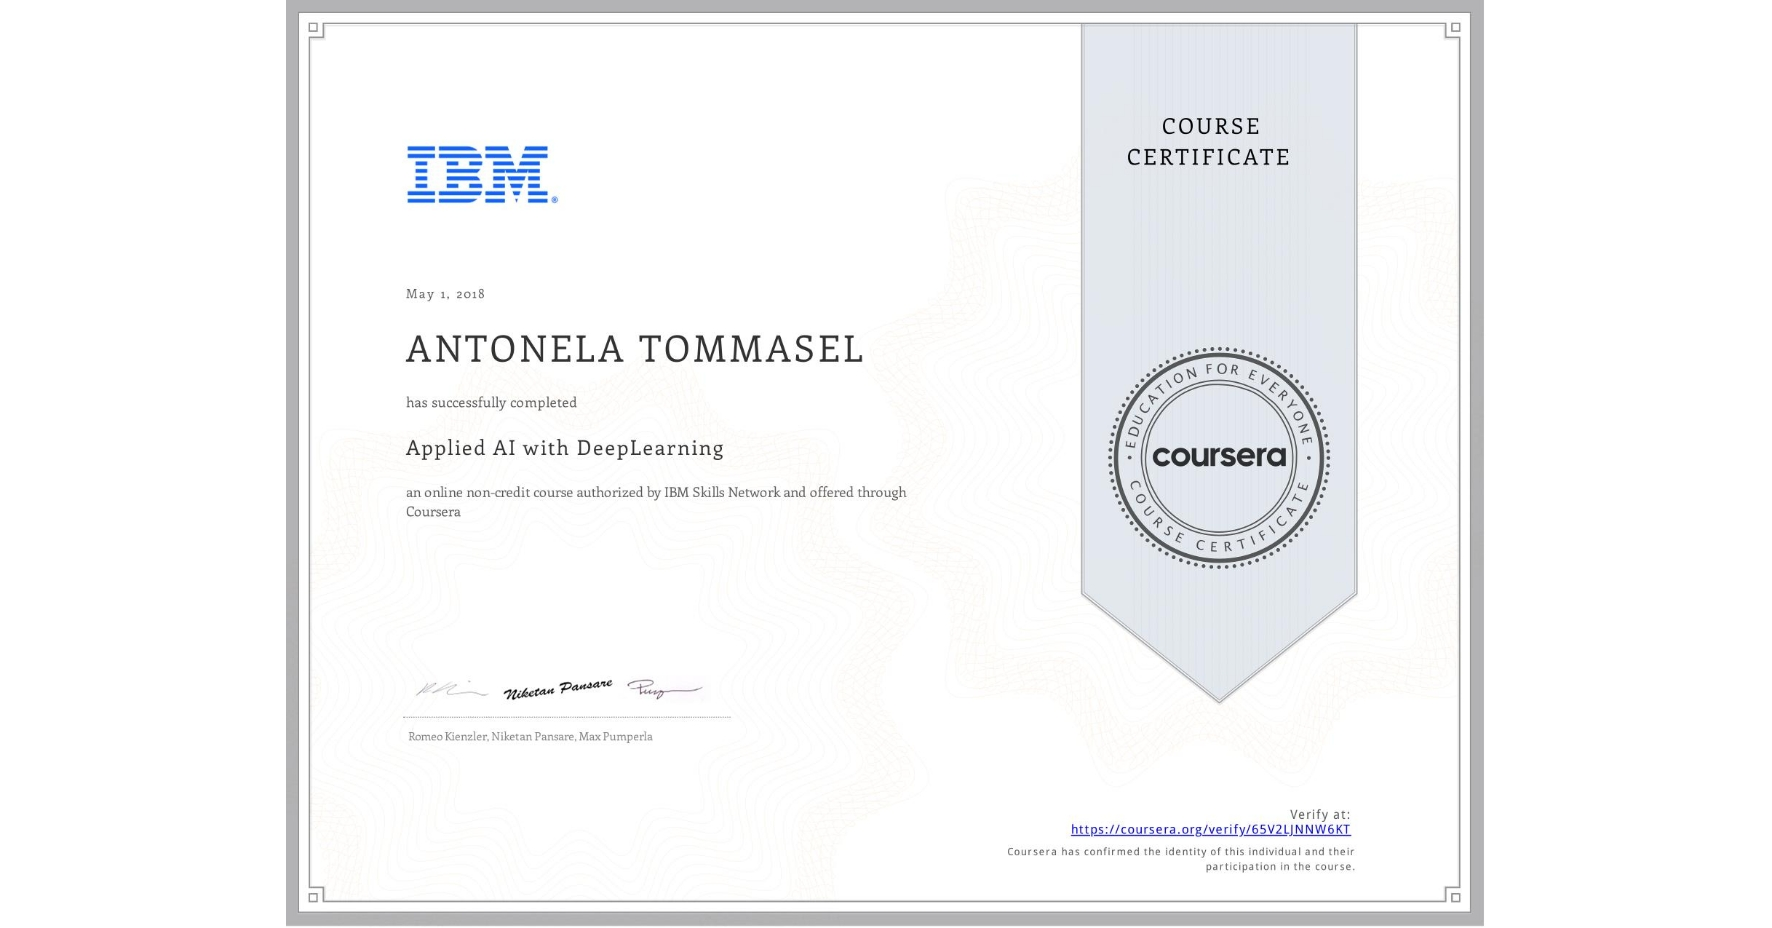 View certificate for Antonela Tommasel, Applied AI with DeepLearning, an online non-credit course authorized by IBM and offered through Coursera